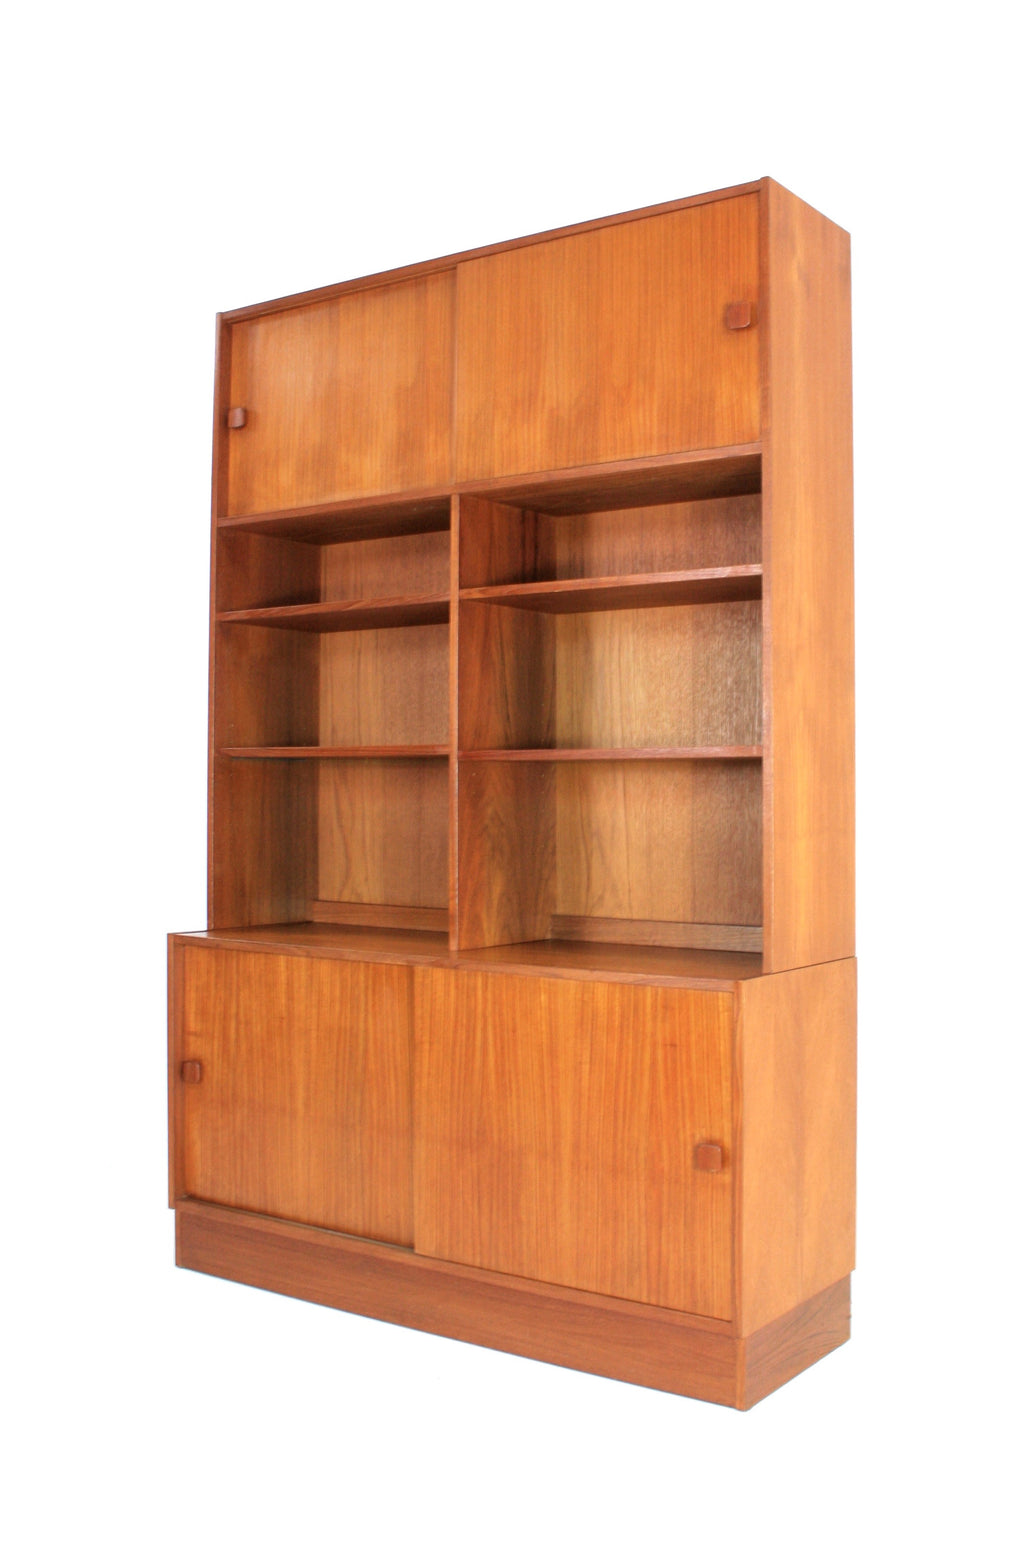 MID CENTURY BOOKCASE DISPLAY CABINET BY DOMINO MOBLER OF DENMARK